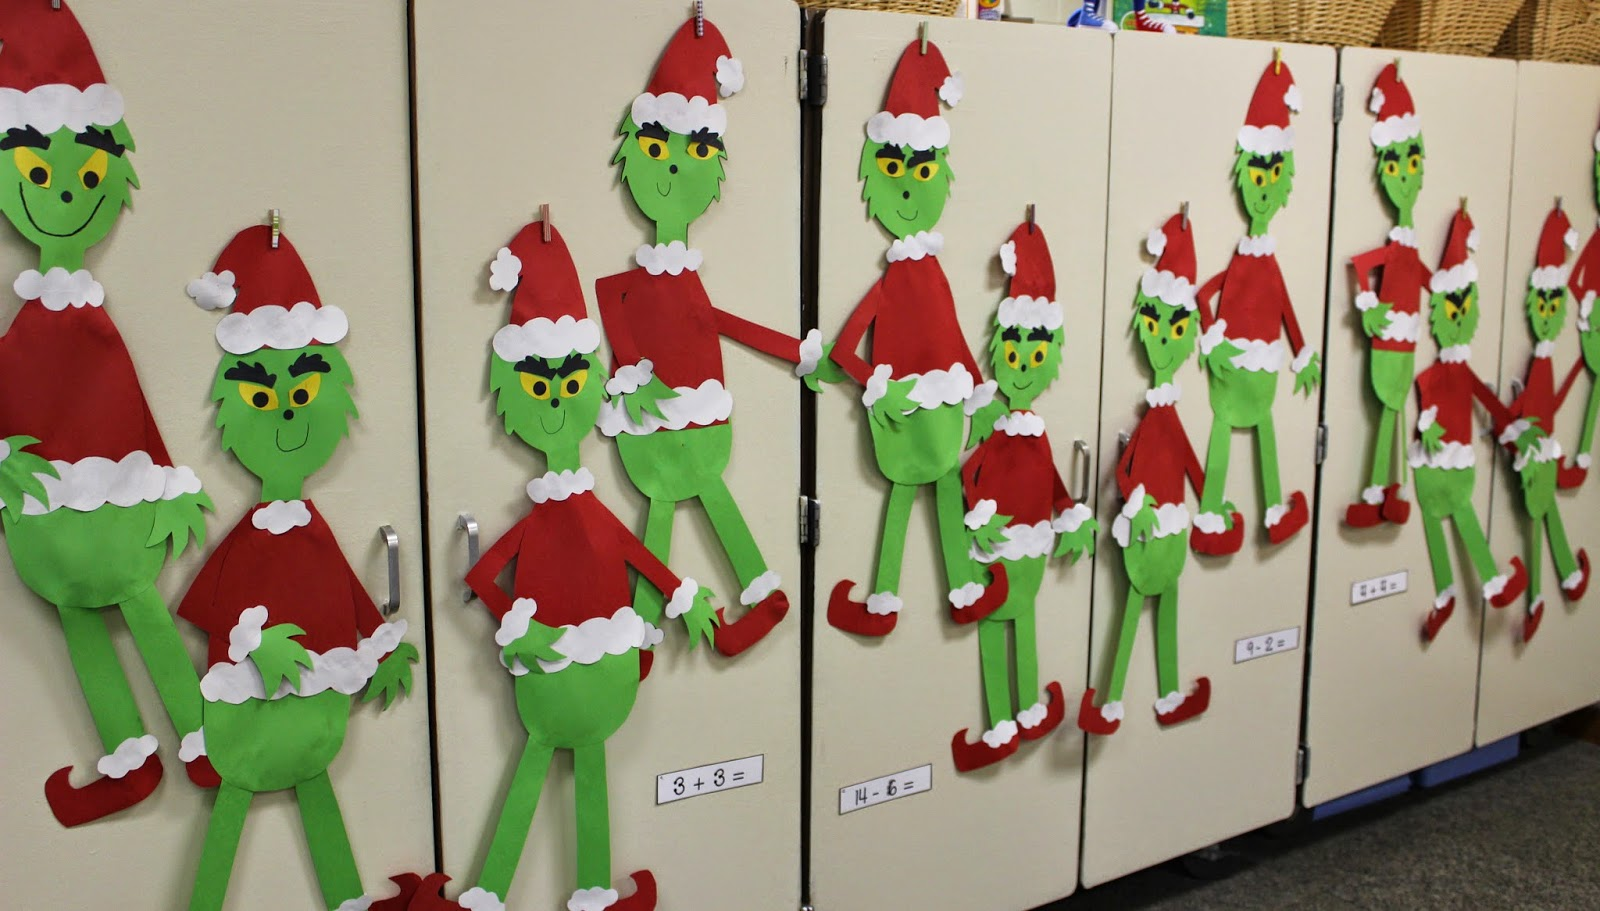 School Is a Happy Place: Just a Pinch of Grinch